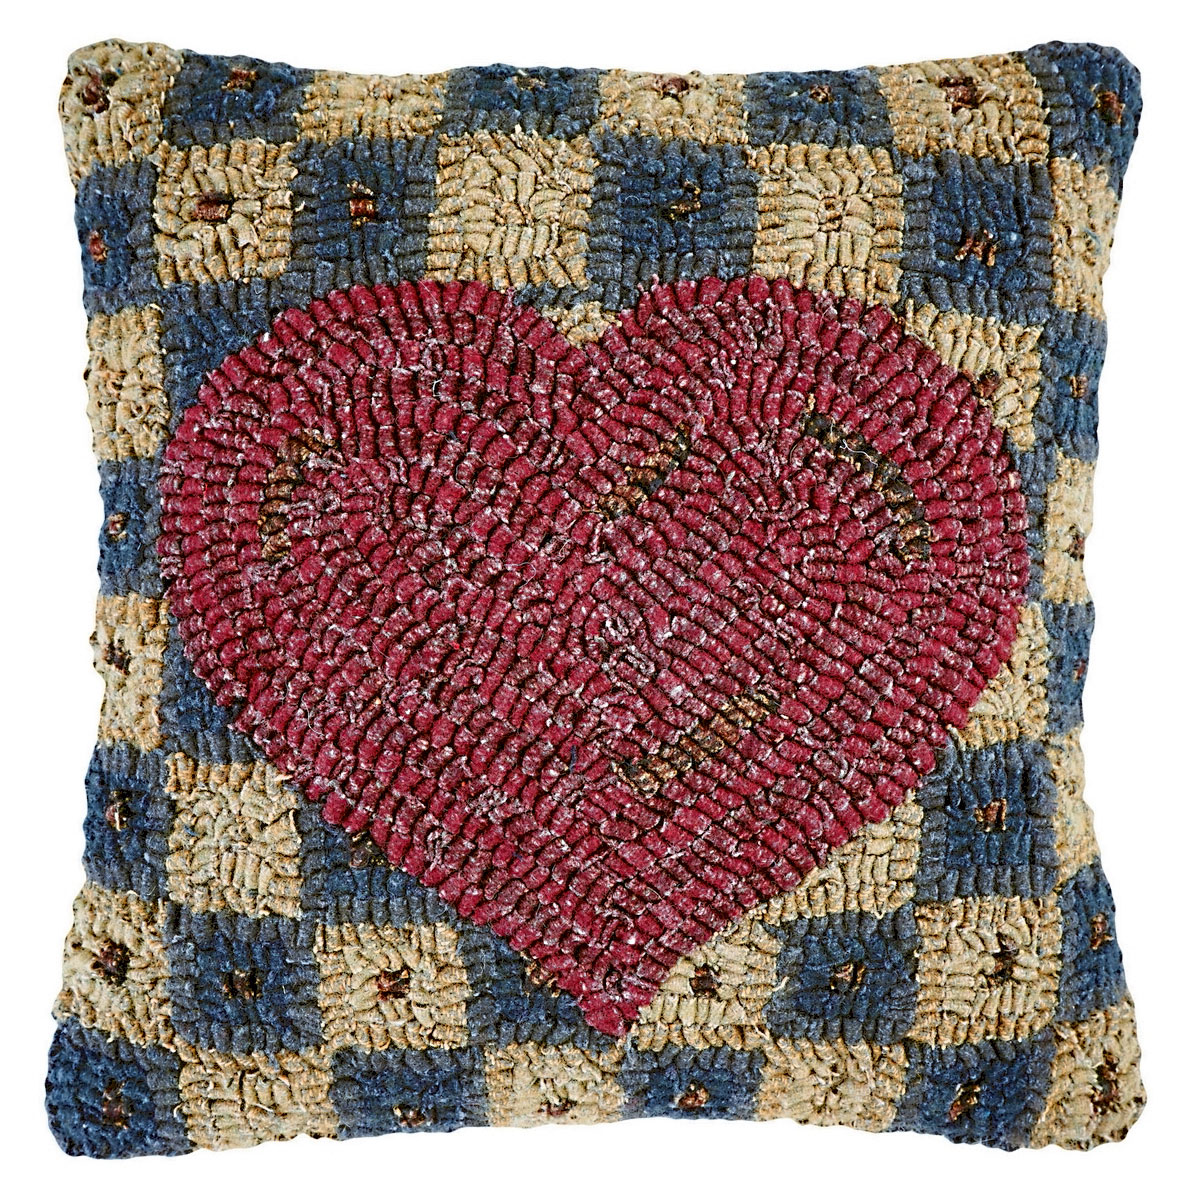 hsd-212641-love-note-hooked-wool-pillow-square-12x12-lrg